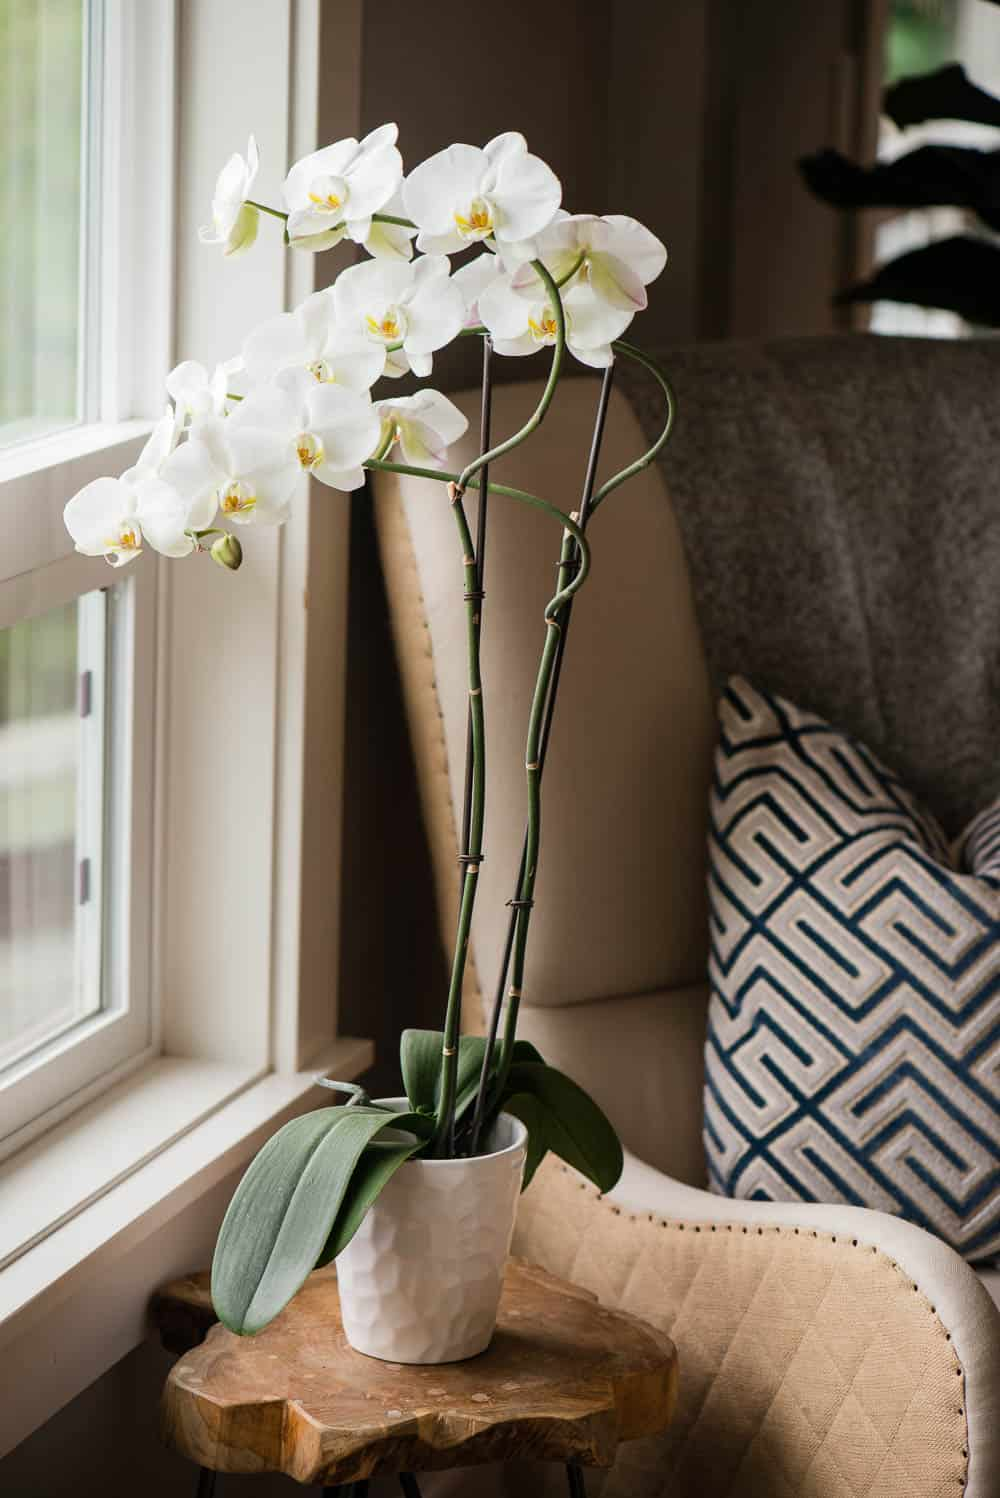 orchid care sunlight